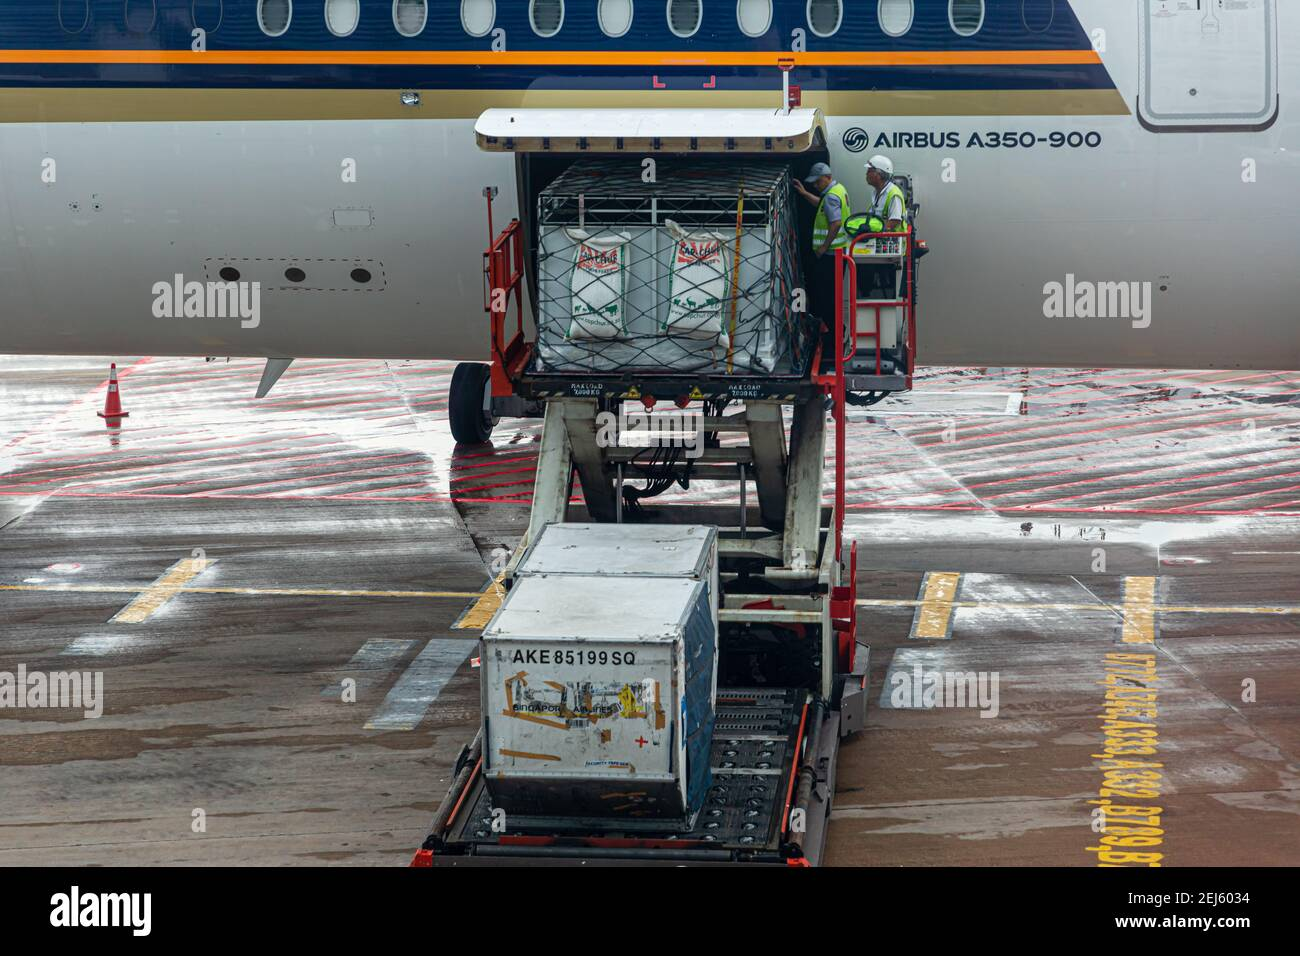 A ULD loader lifting a unit load device (ULD) with living Zebras to an aircraft's cargo bay of a Singapore Airlines machine at Changi Intern. Airport Stock Photo